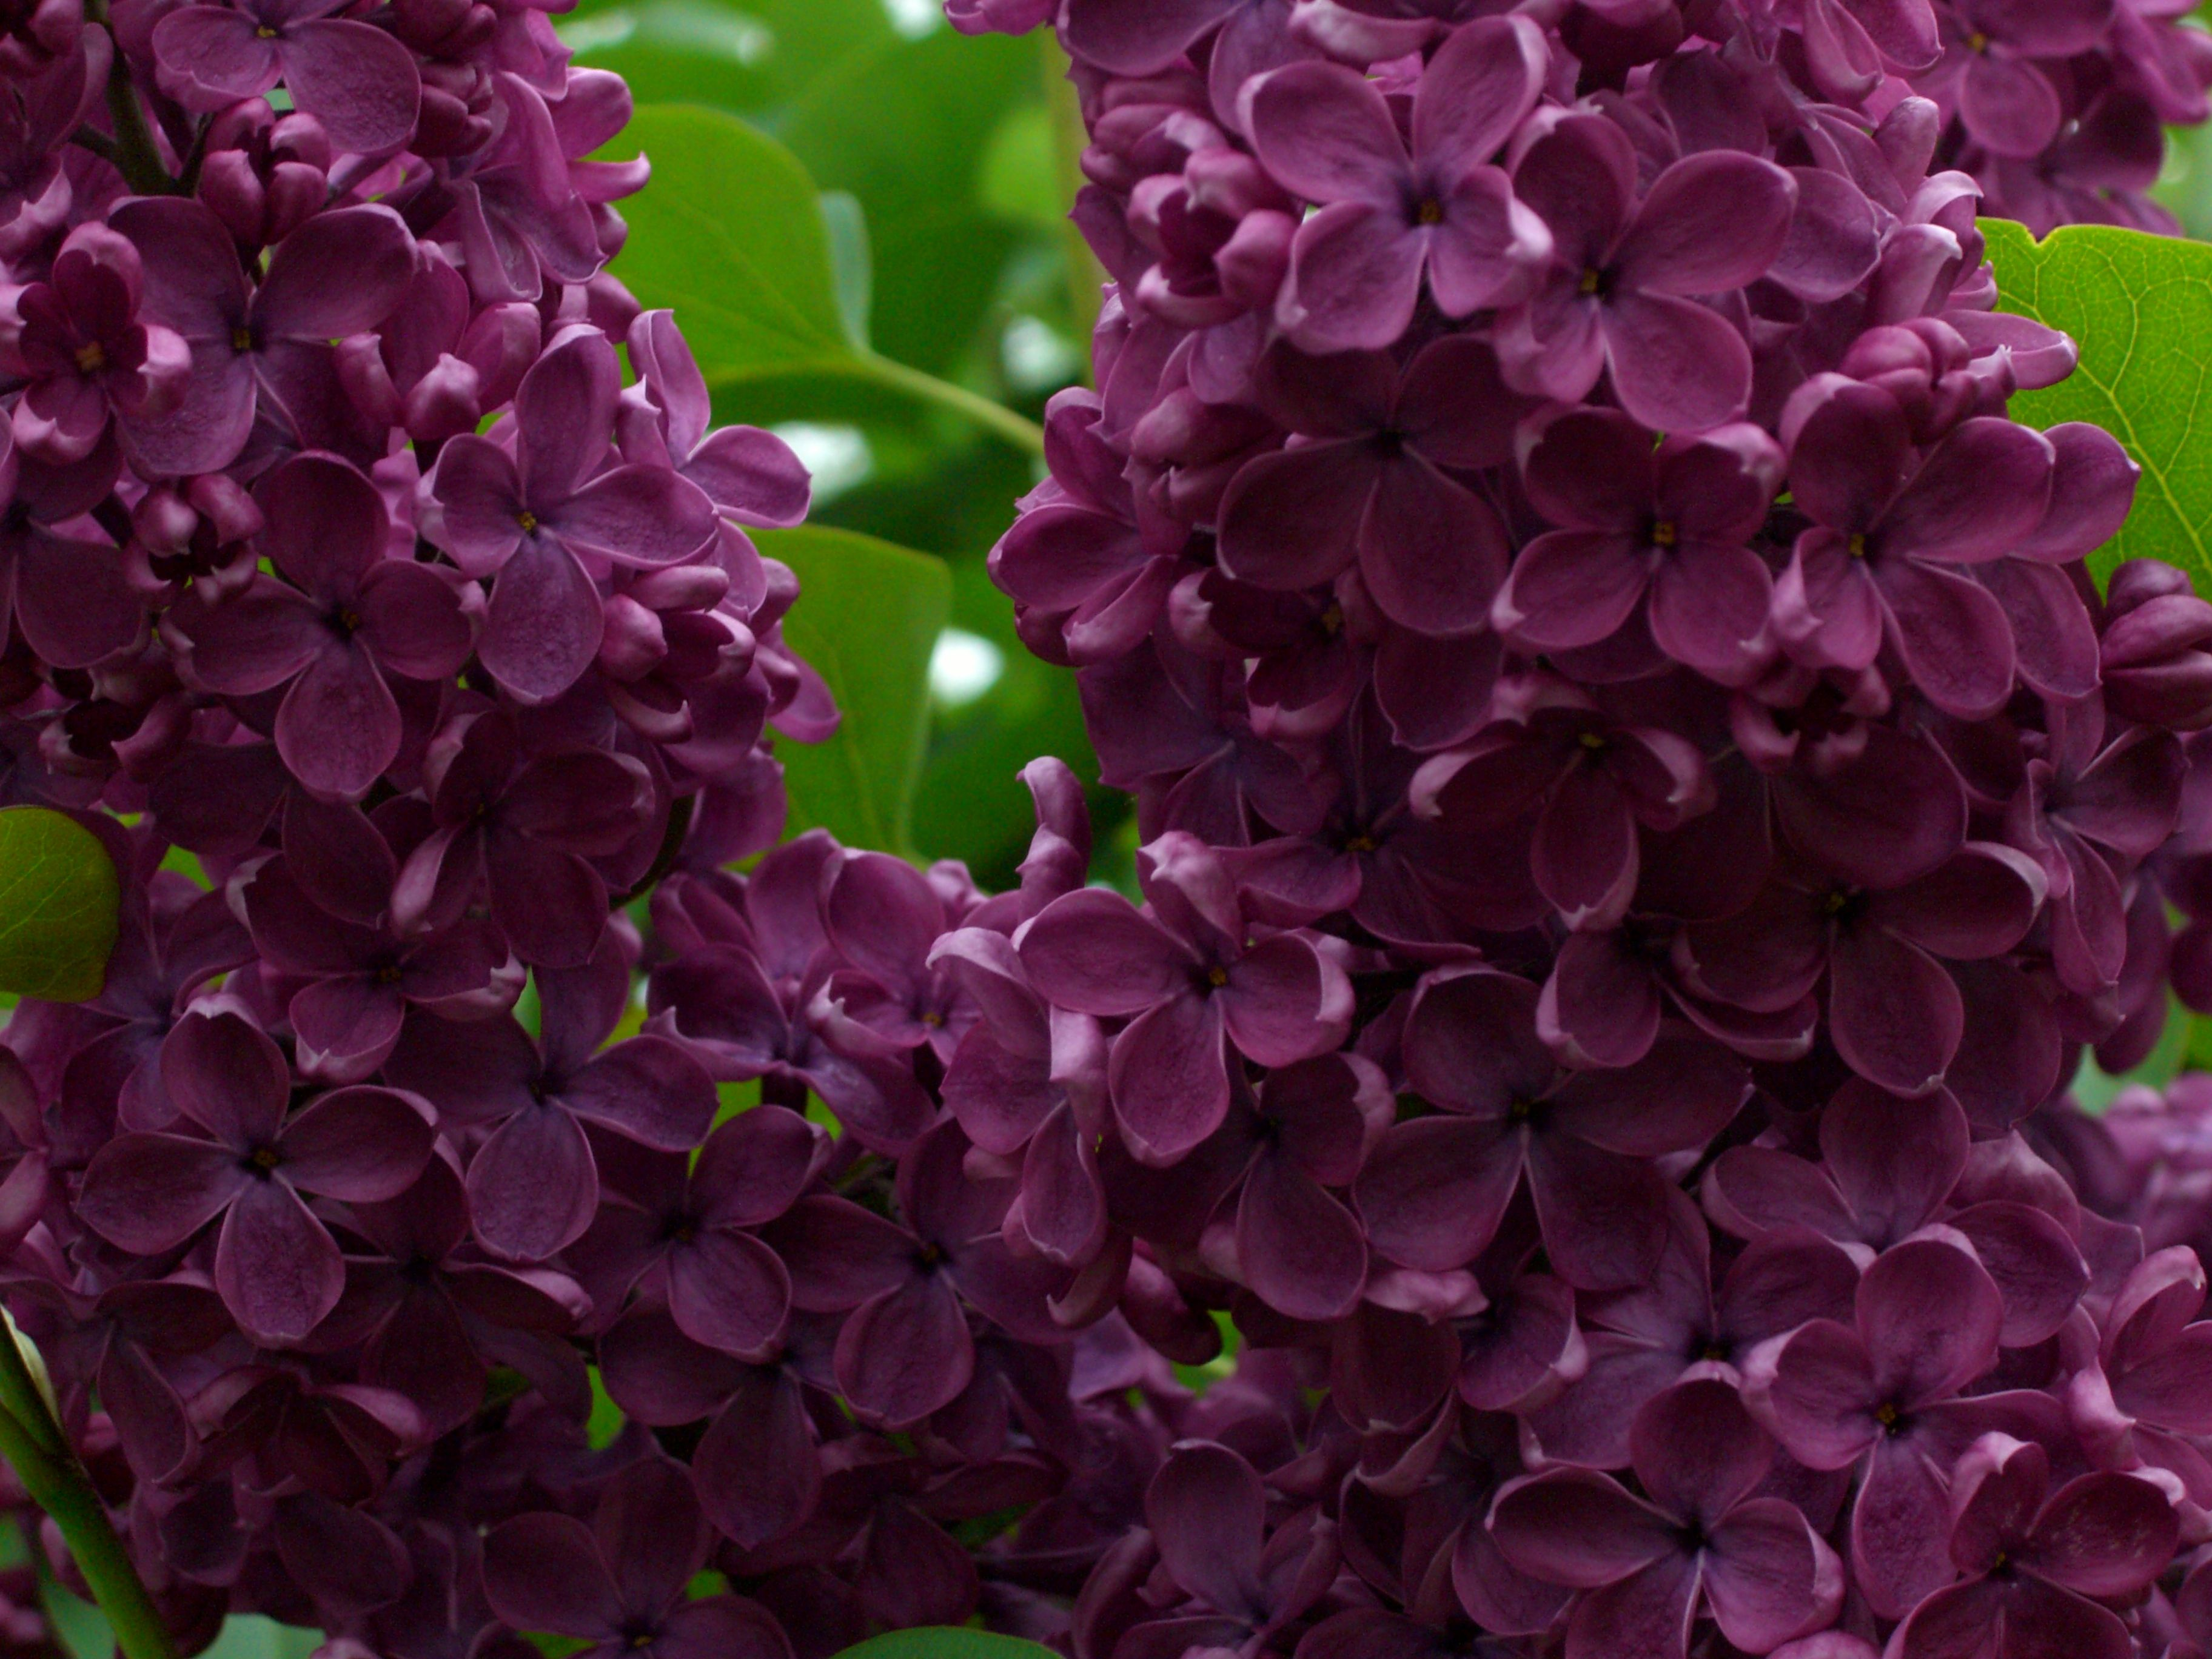 Rochester Is Called Flower City Bc Of It S Beautiful Lilac Trees Lilac Tree Trees To Plant Flowering Trees